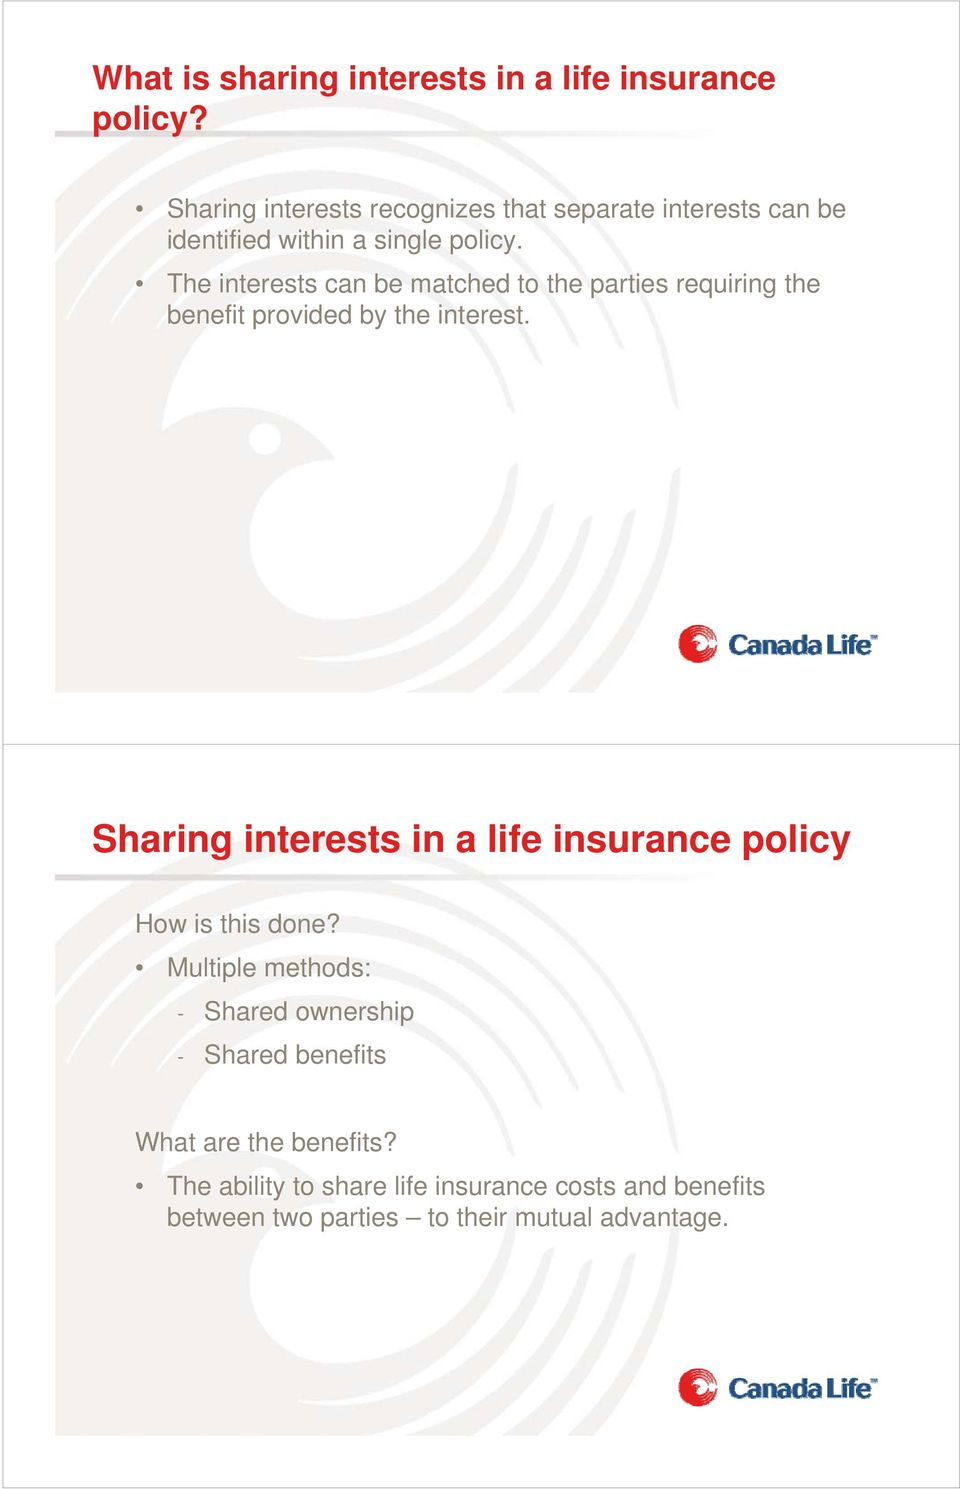 The interests can be matched to the parties requiring the benefit provided by the interest.